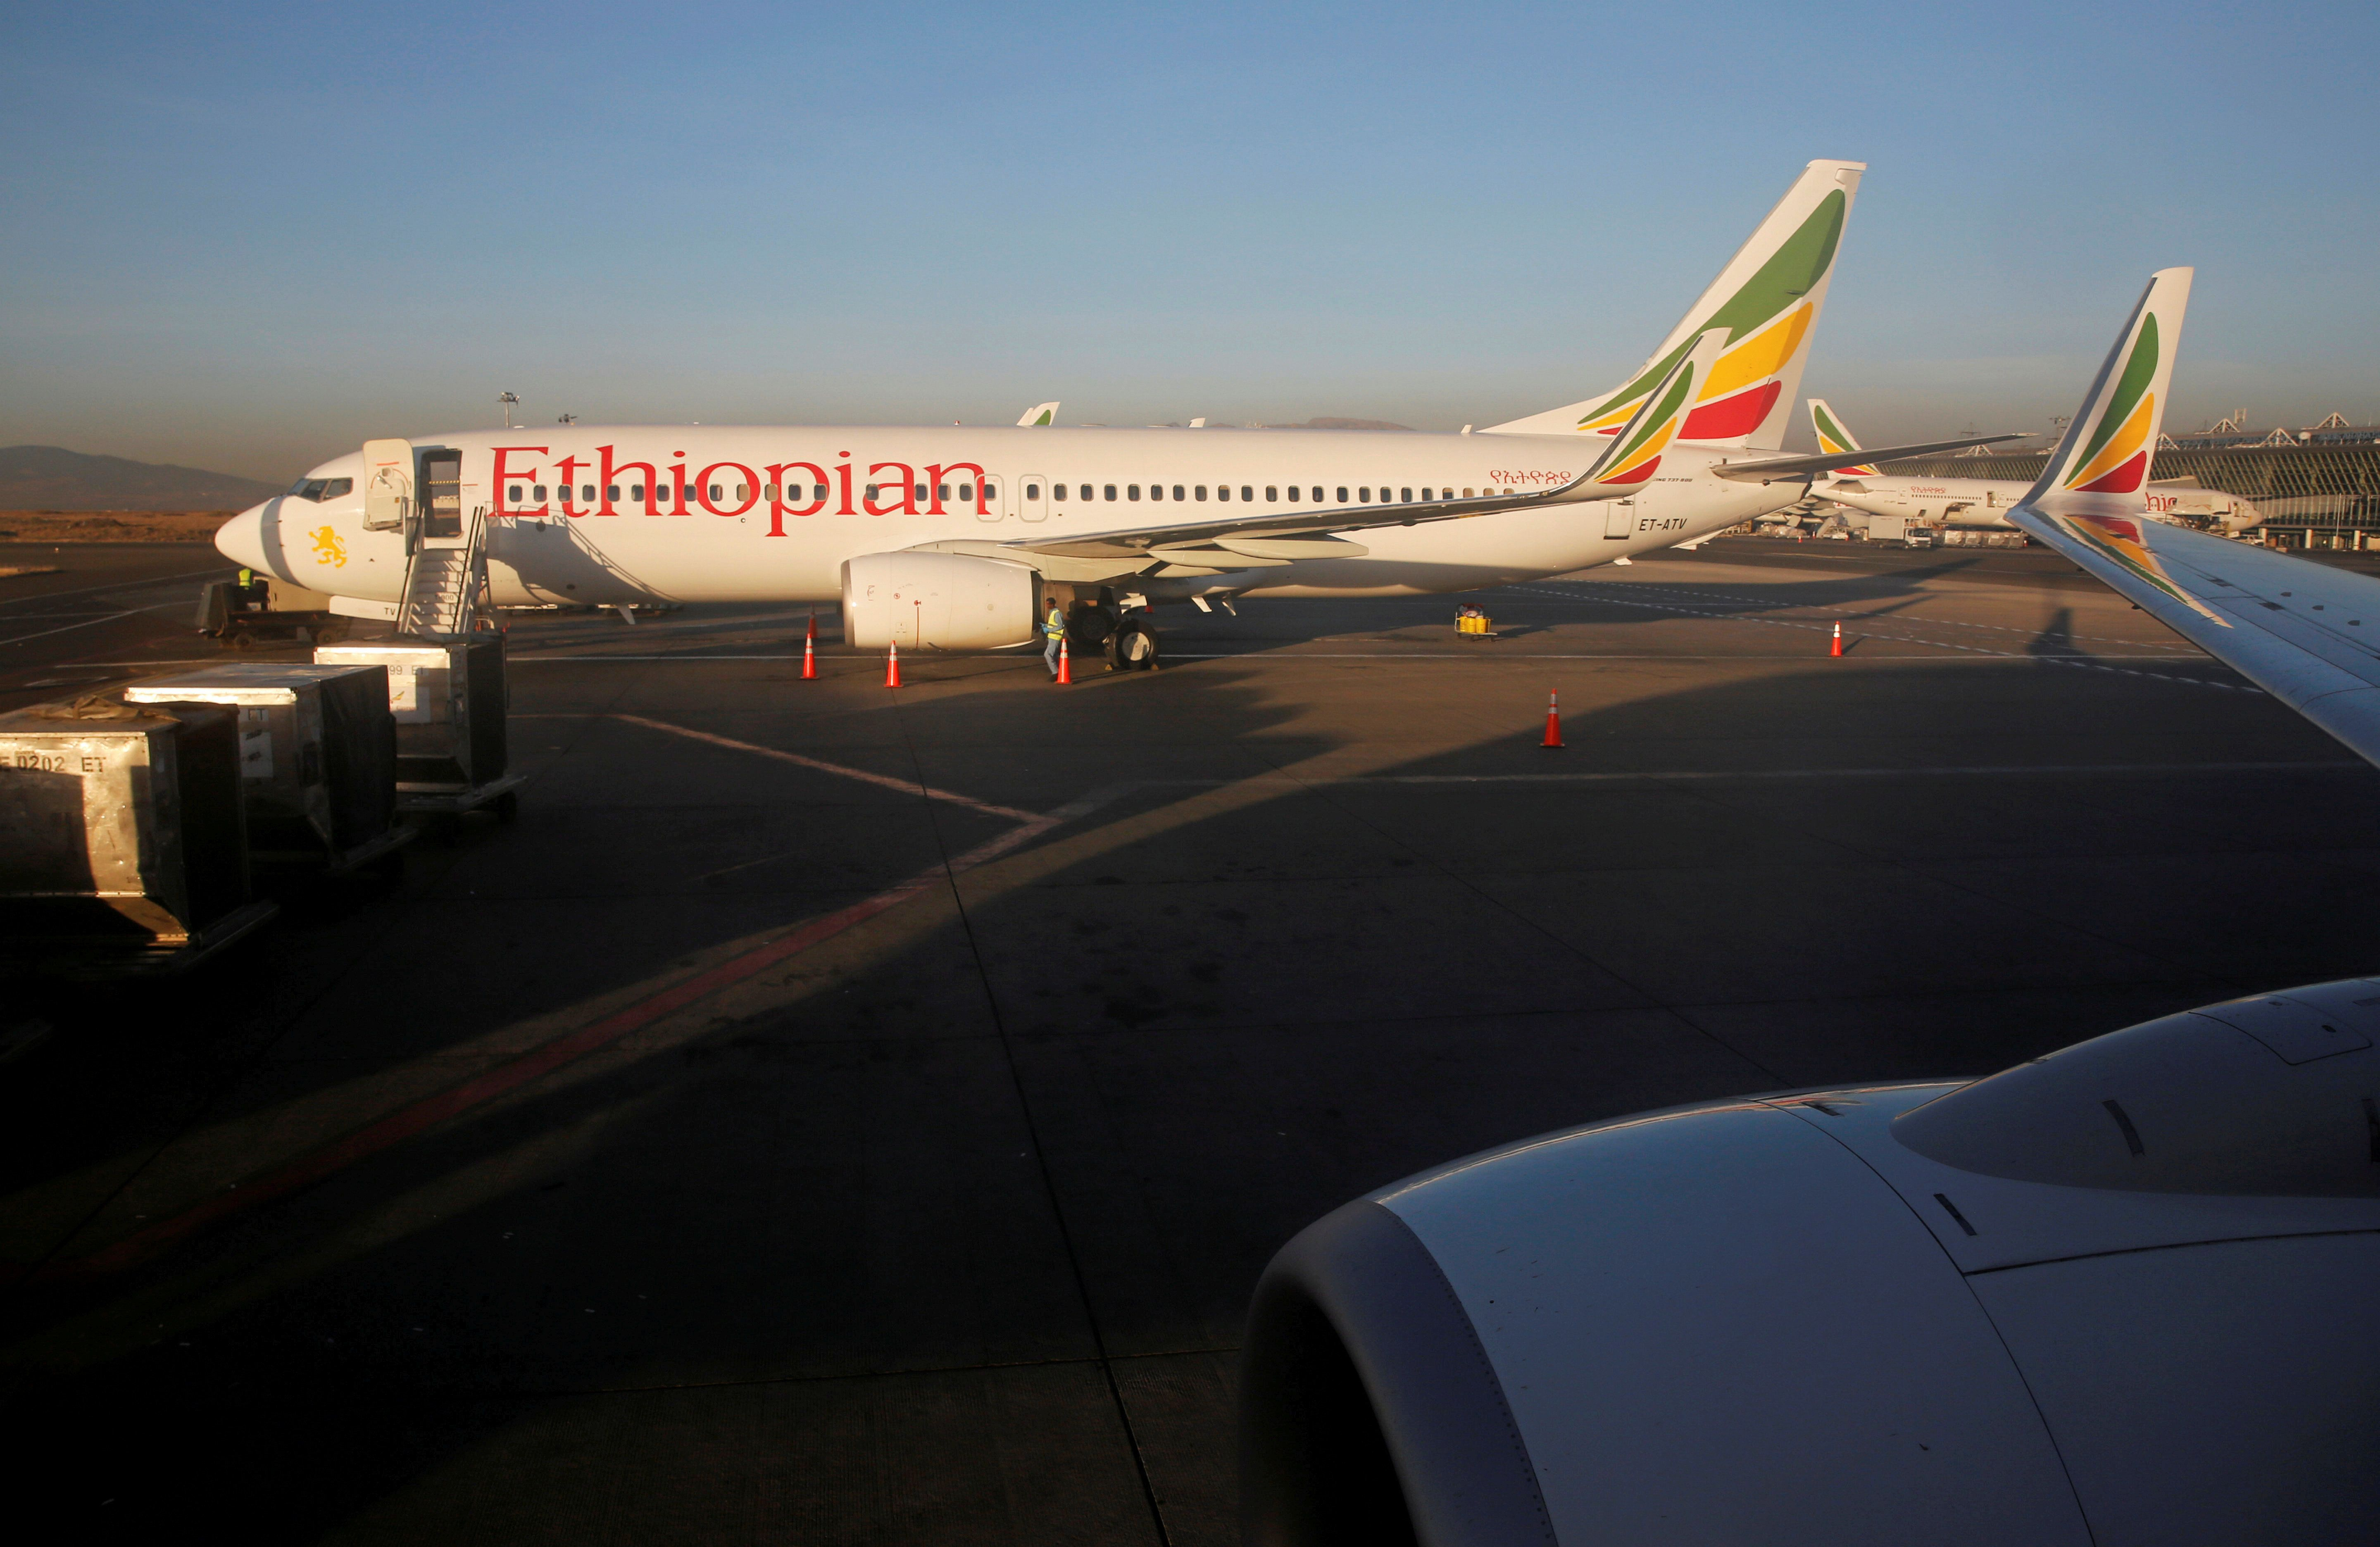 Workers service an Ethiopian Airlines Boeing 737-800 plane at the Bole International Airport in Ethiopia's capital Addis Ababa, January 26, 2017. Picture taken January 26, 2017. REUTERS/Amr Abdallah Dalsh